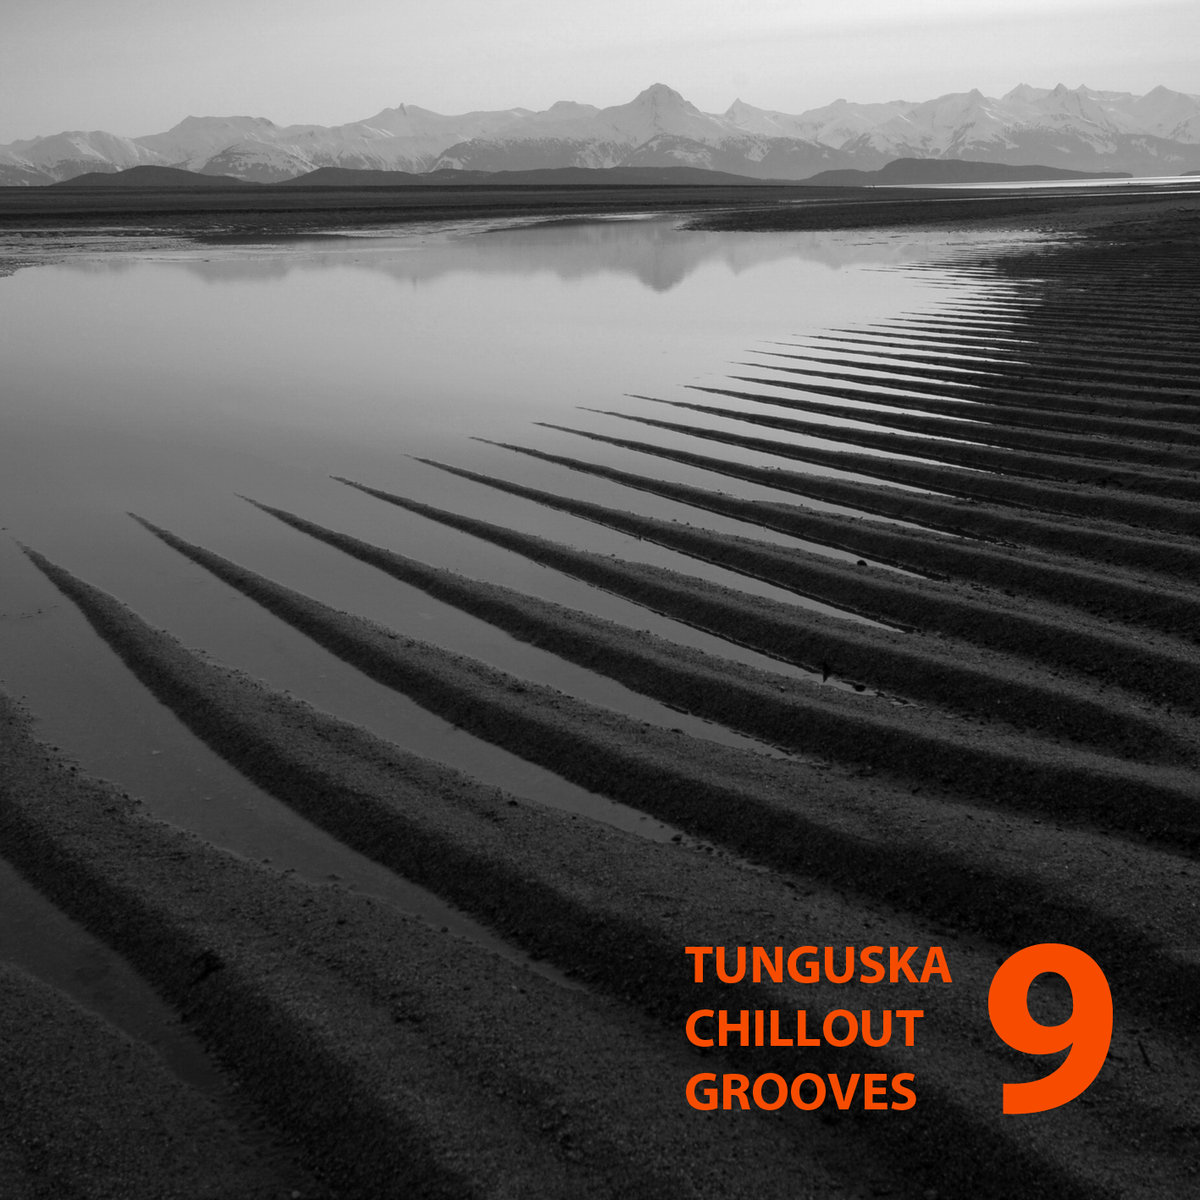 Tunguska Chillout Grooves - Volume 9 (artwork)